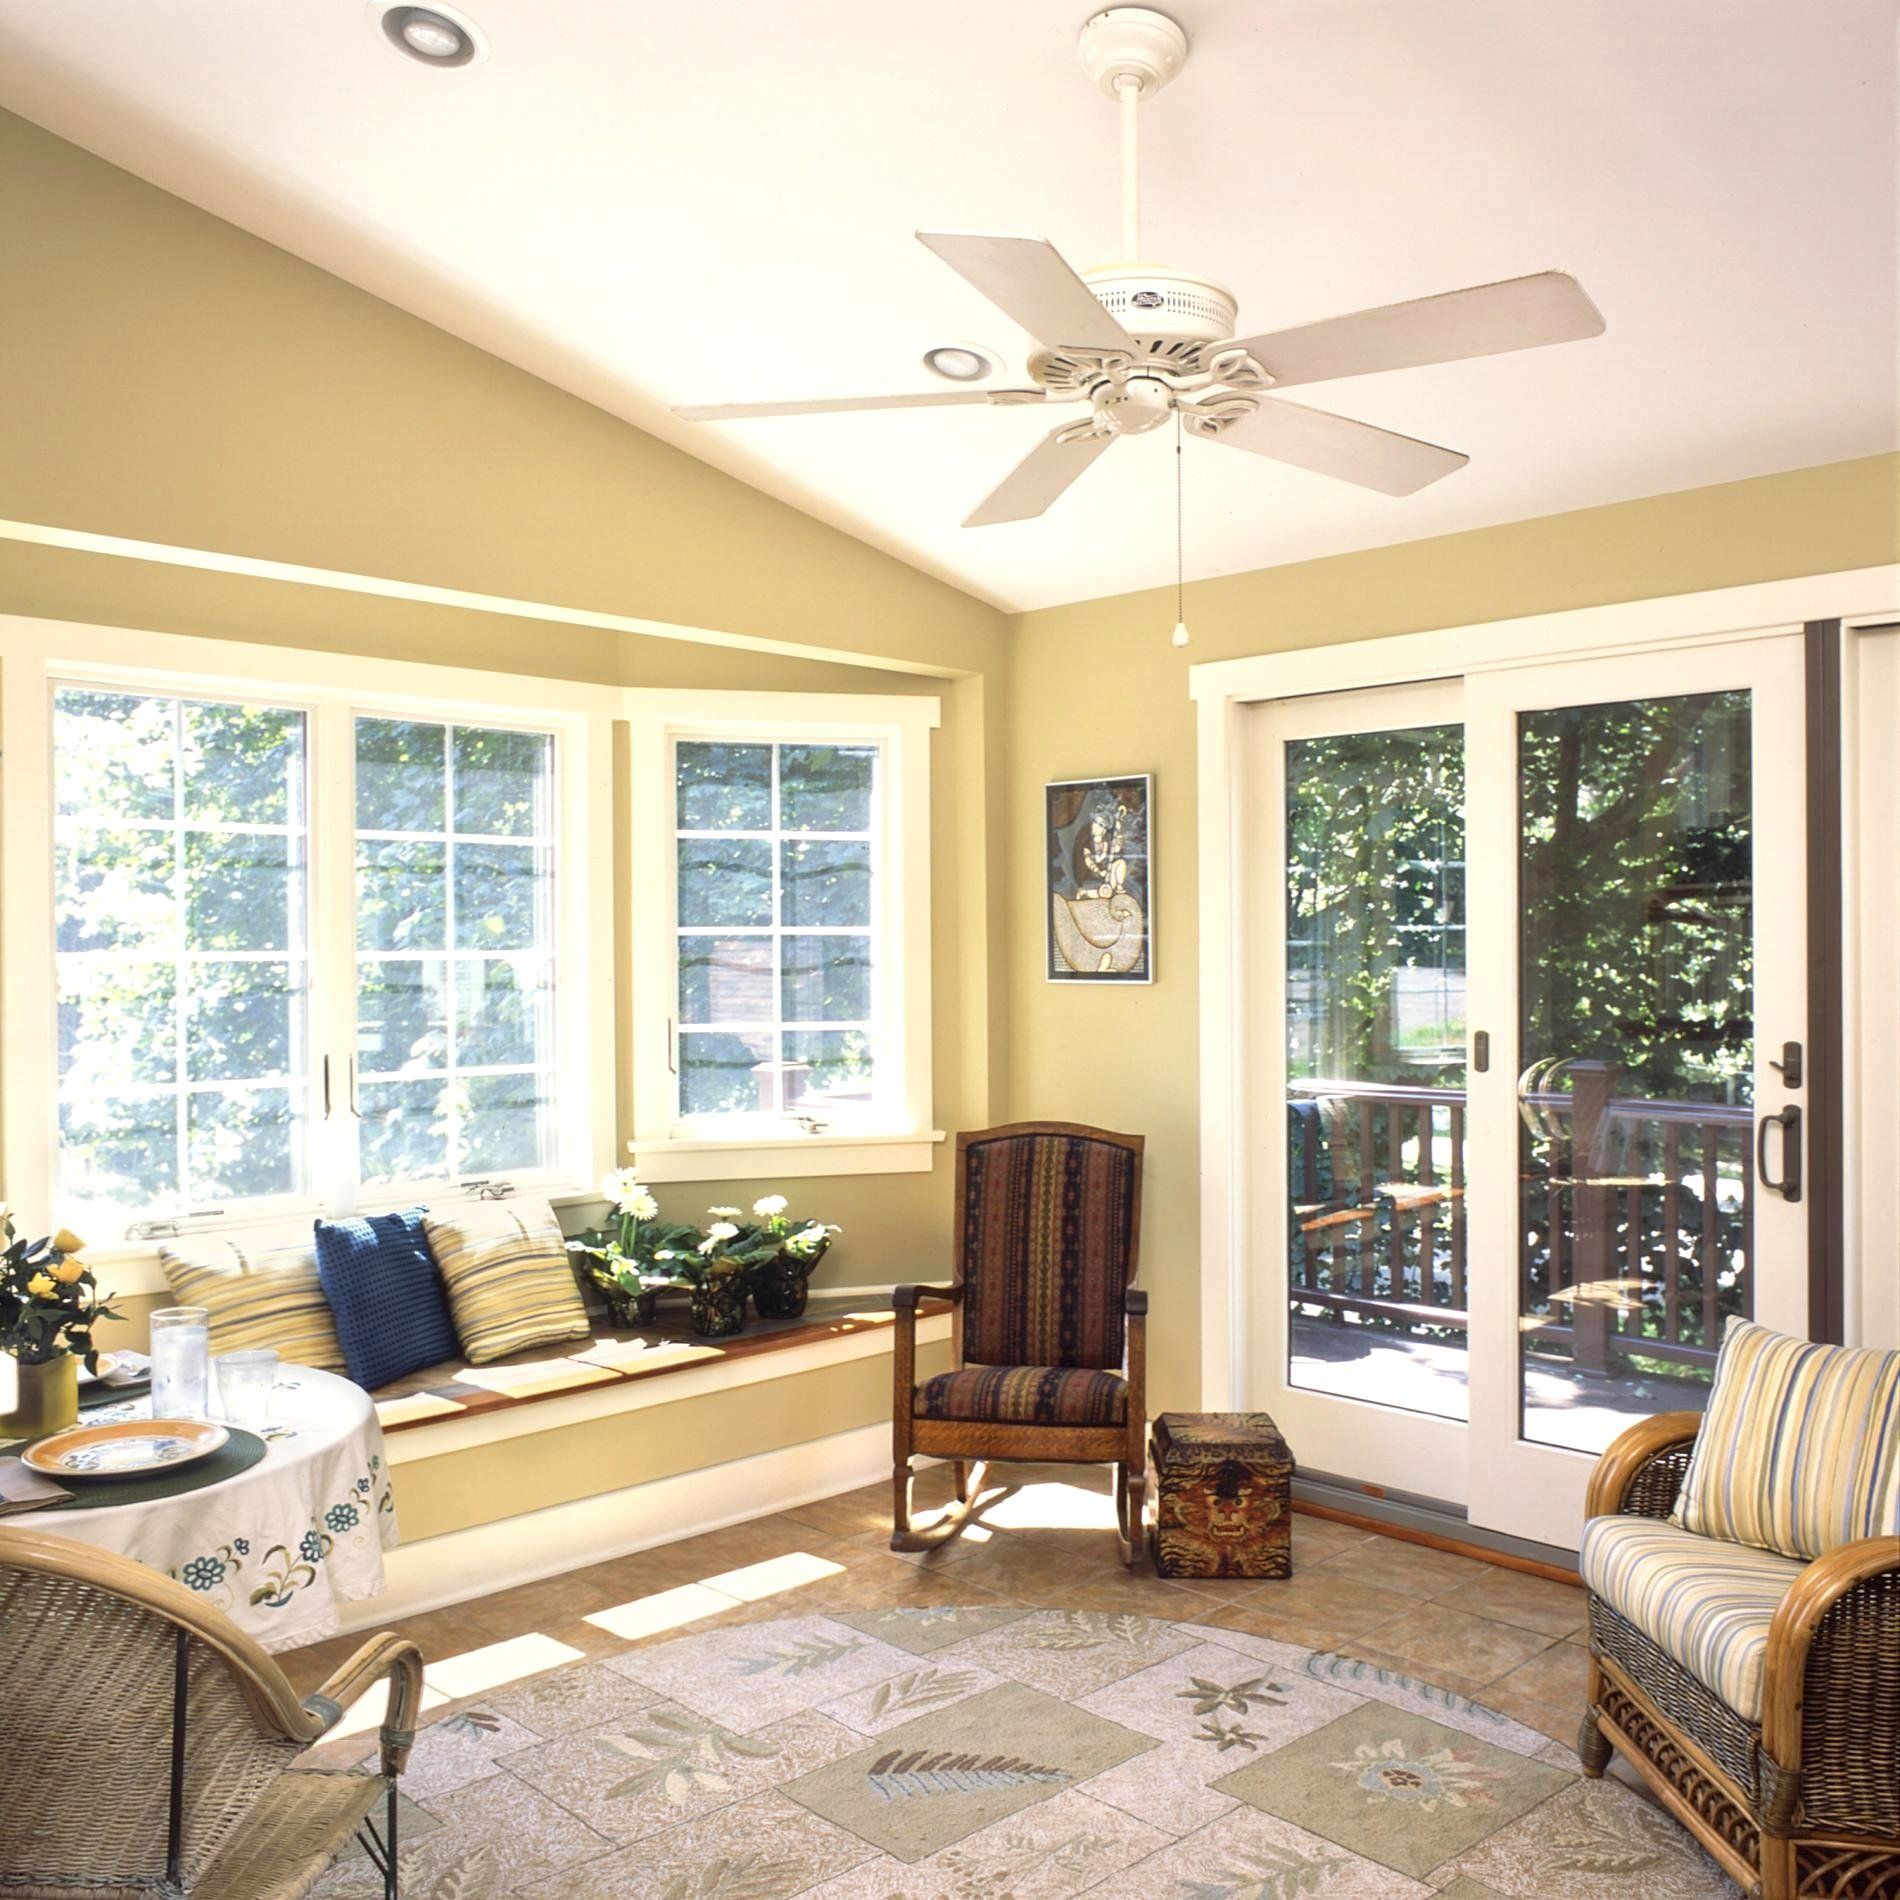 Yellow Gold Paint Color Living Room Comfy Sunroom Interior Nuance With Gold Wall Paint Color And